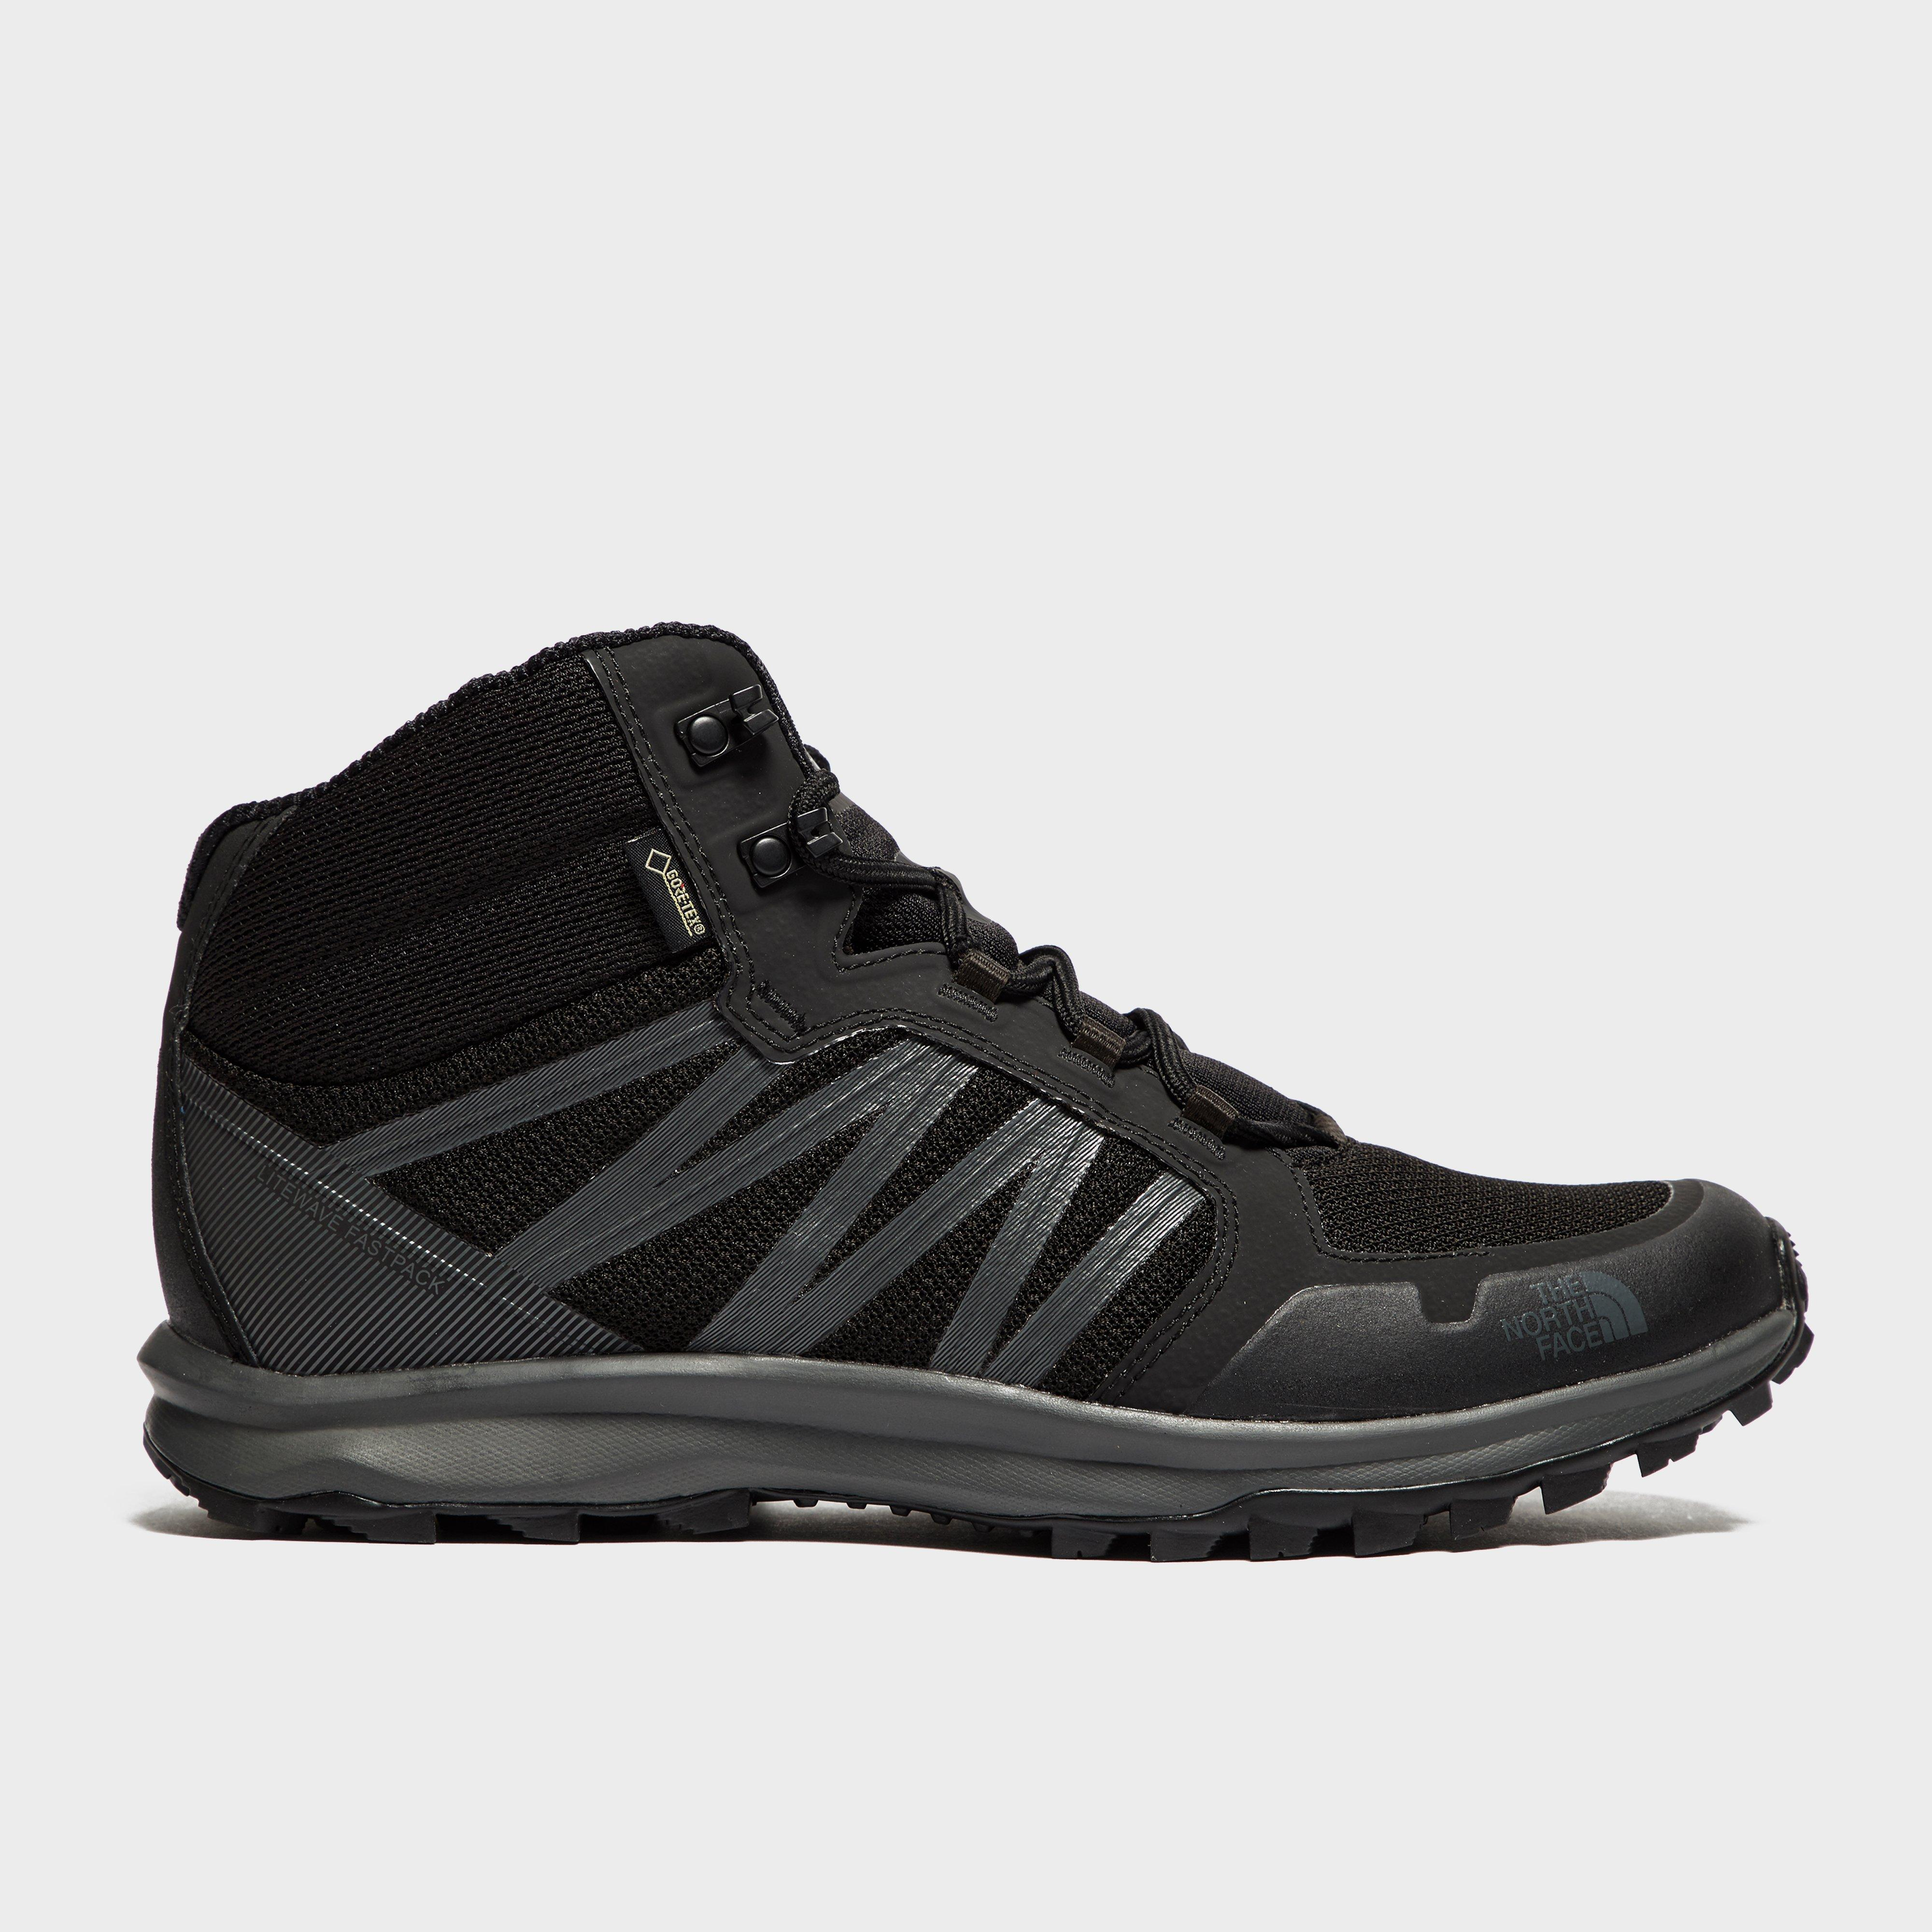 14aed6cd50d Men's Litewave Fastpack Mid GORE-TEX® Boots